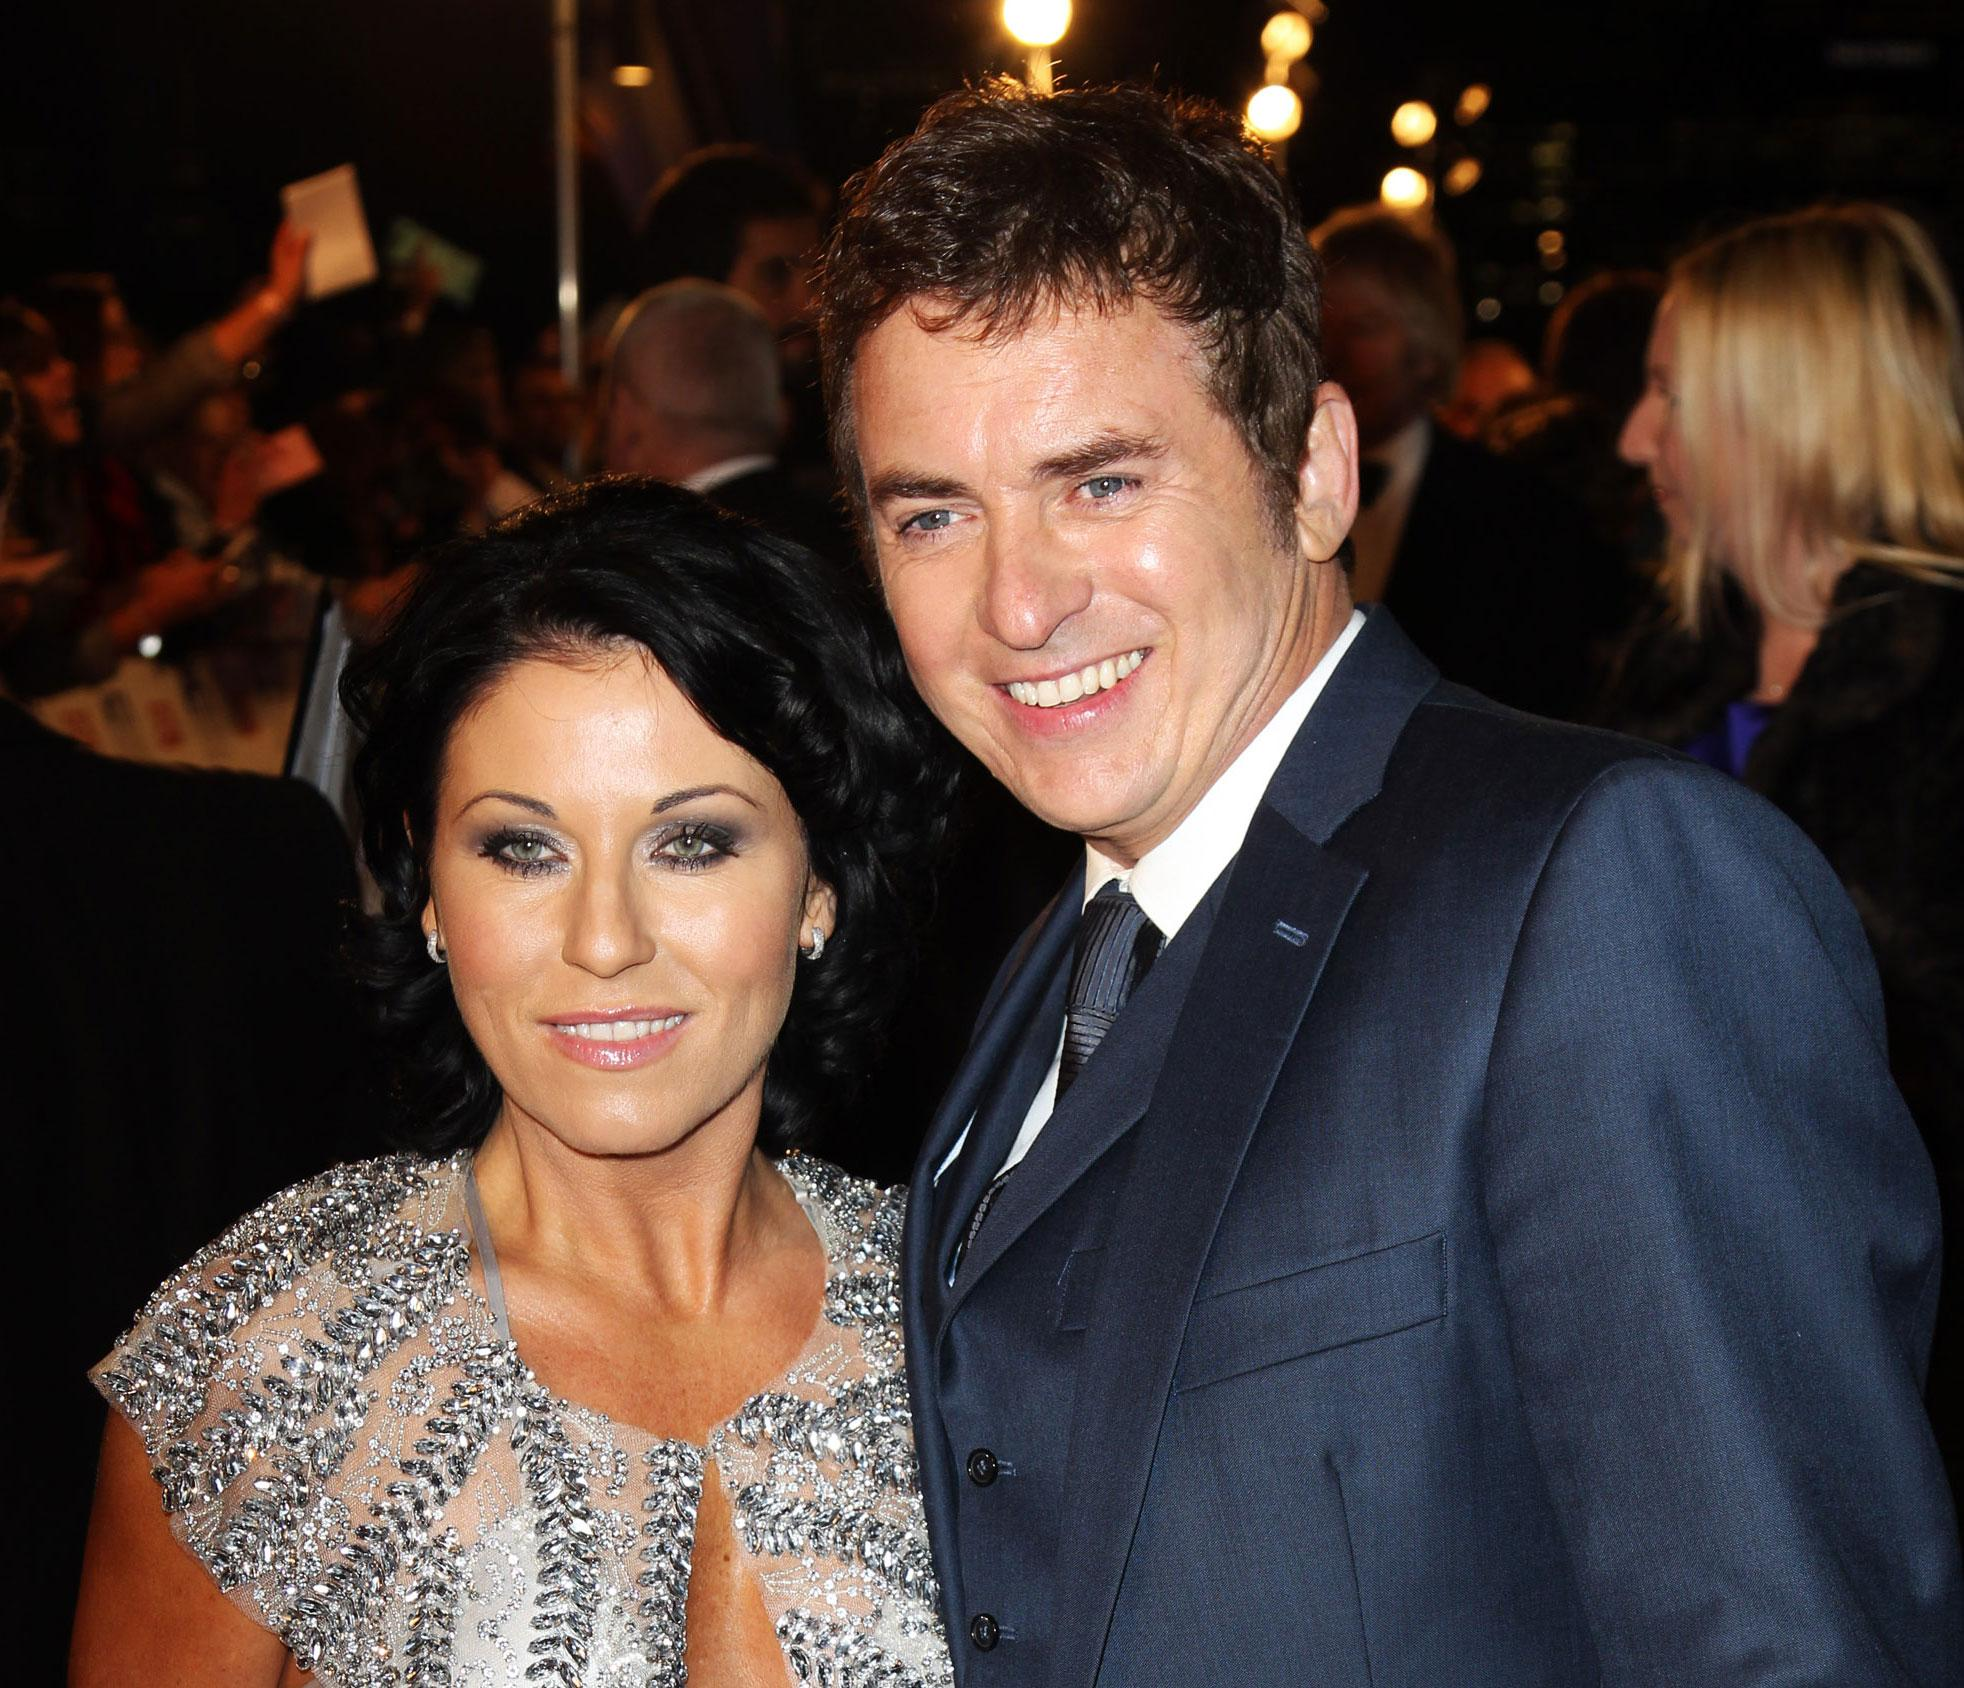 Kat and Alfie Moon to get back together?